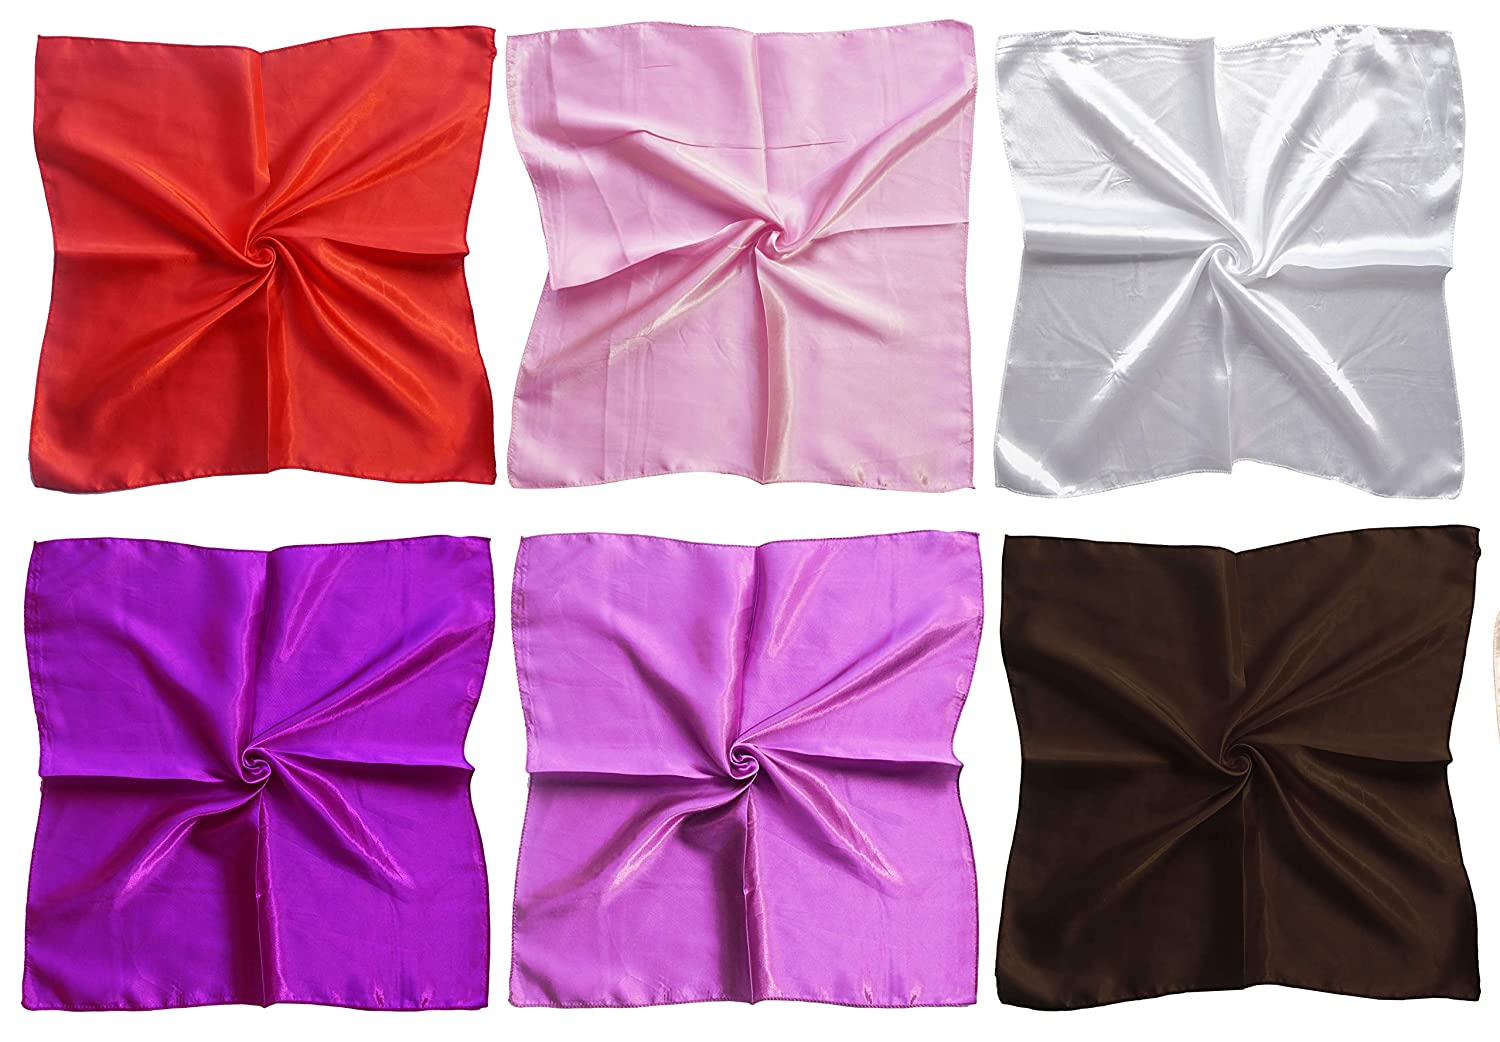 LilMents 12 Mixed Designs Small Square Satin Womens Neck Head Scarf Scarves Bundle Lot Set